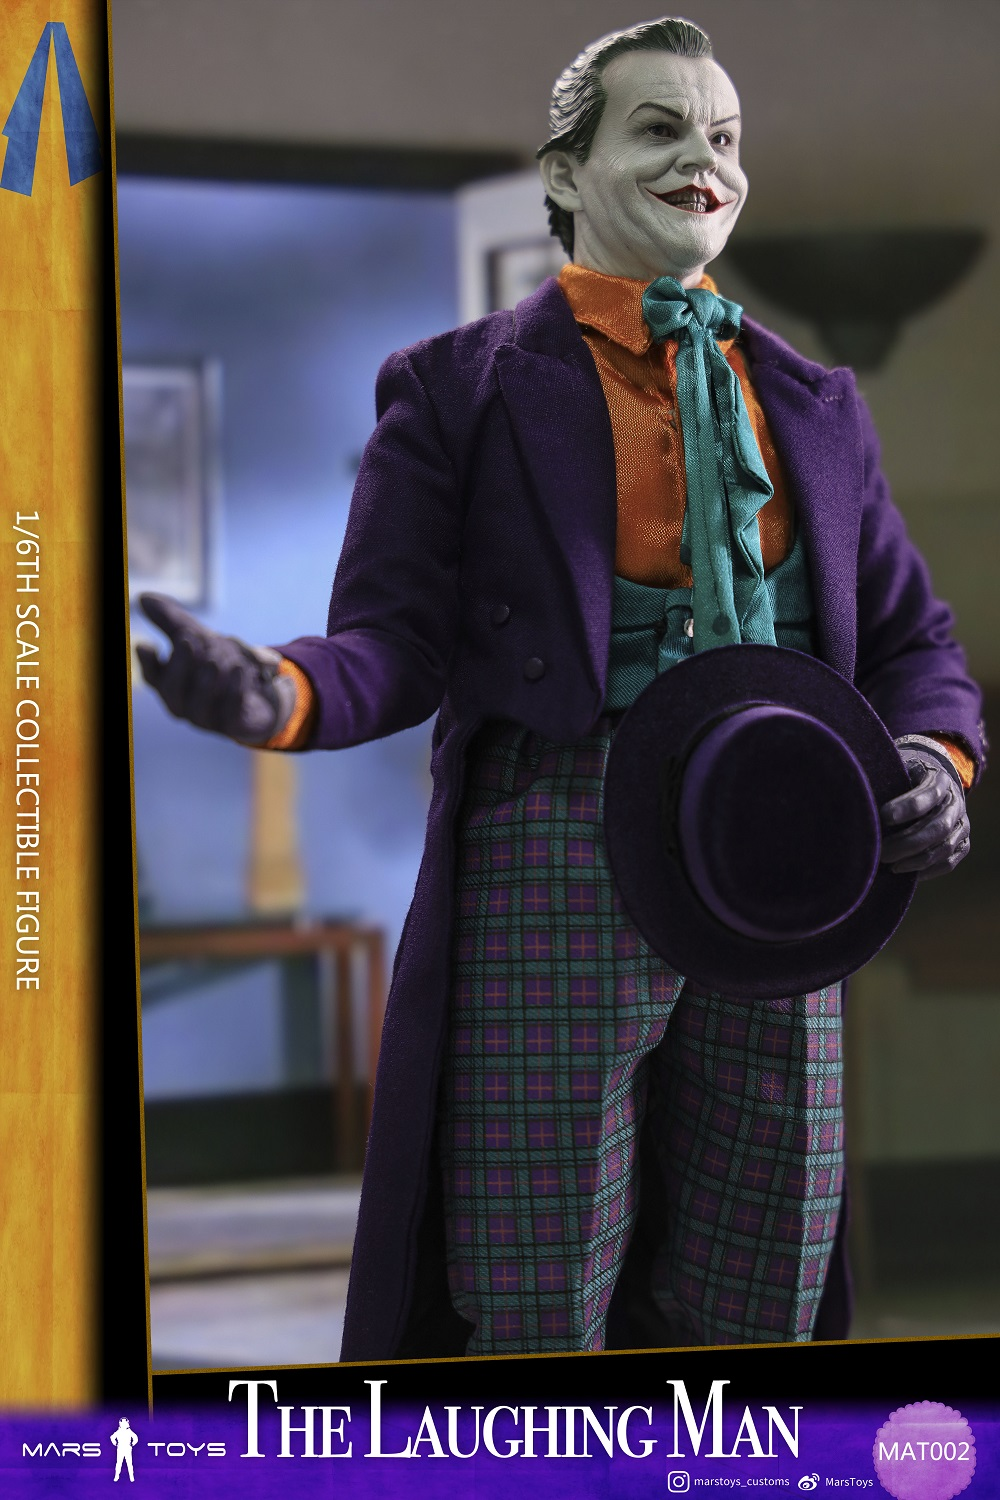 BATMAN 1989 JOKER THE LAUGHING MAN JACK NICHOLSON 1/6 SCALE FIGURE 5